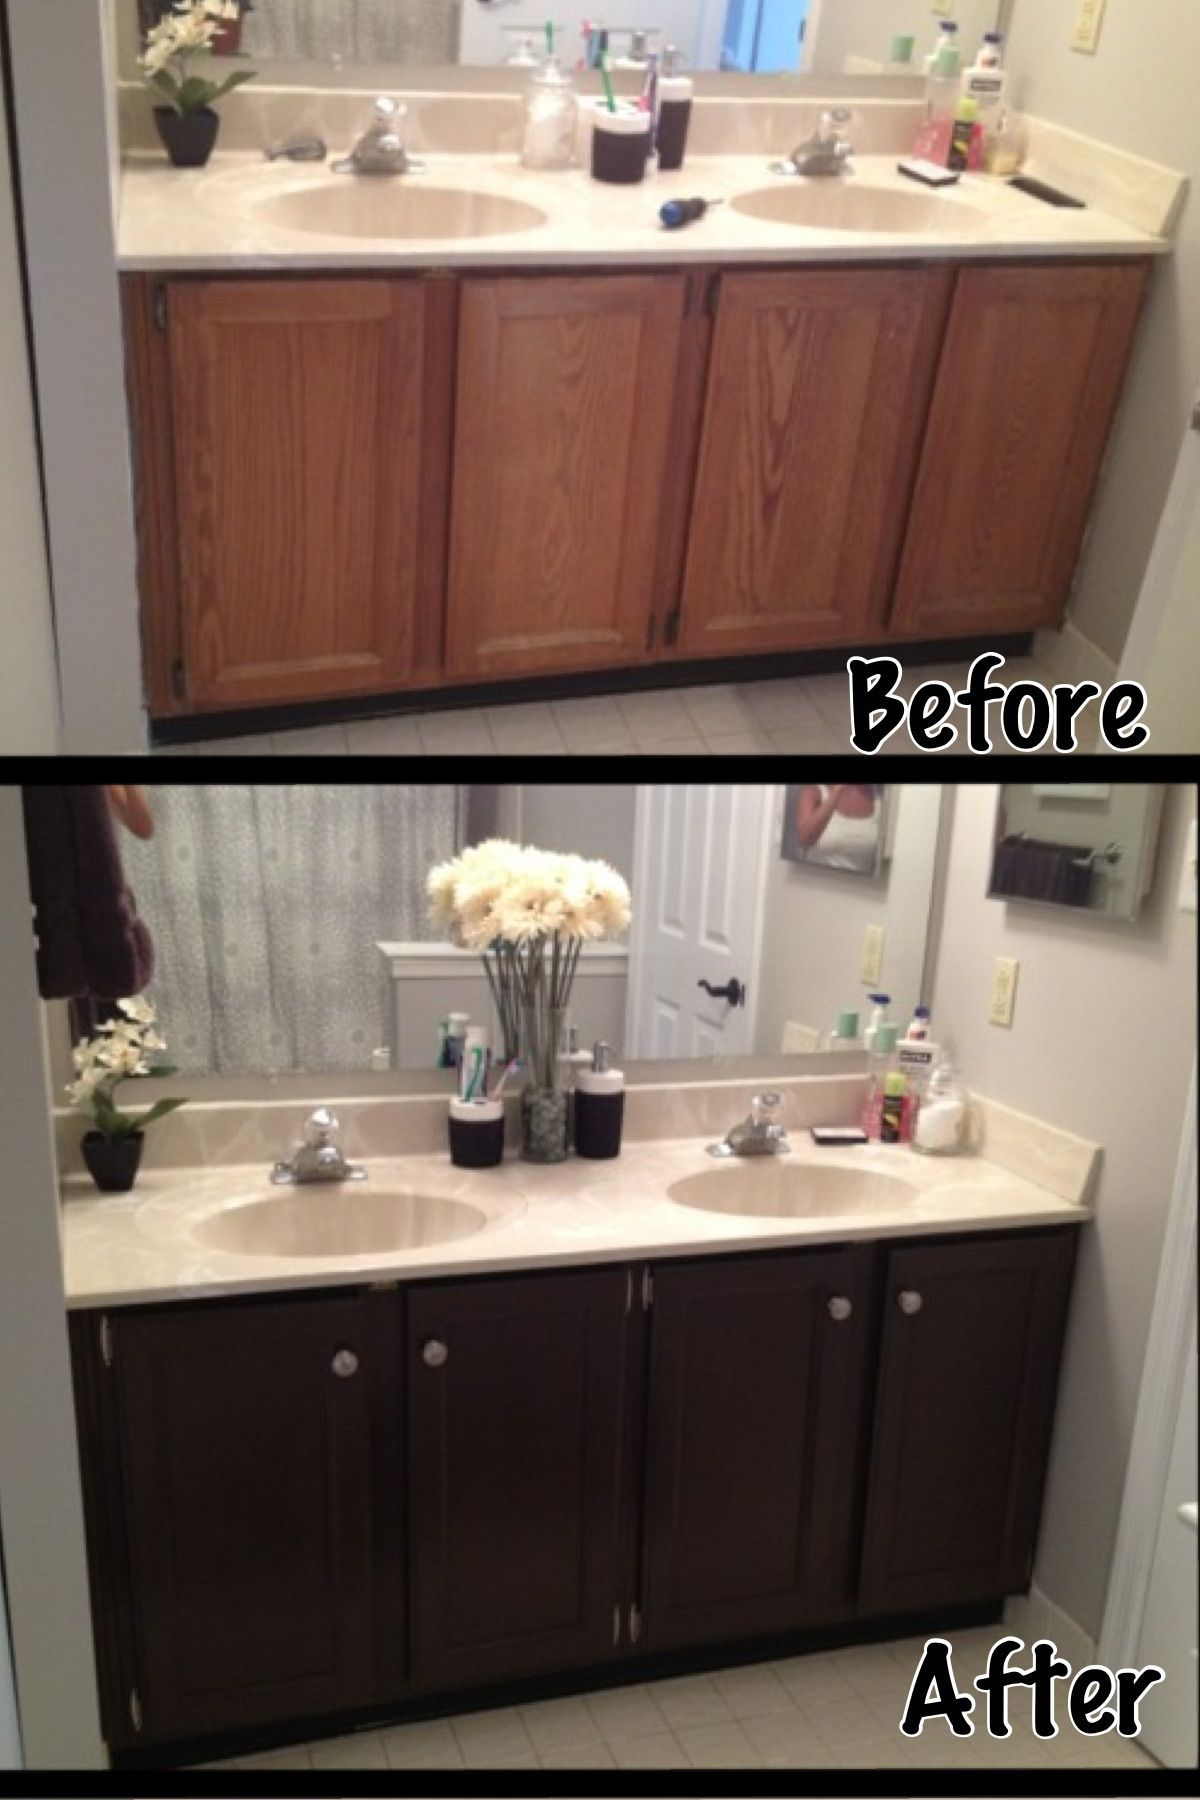 I M So Proud Of Myself For This Project It S Amazing What A Little Bit Of Paint Bathroom Makeovers On A Budget Bathroom Remodel Master Small Bathroom Makeover